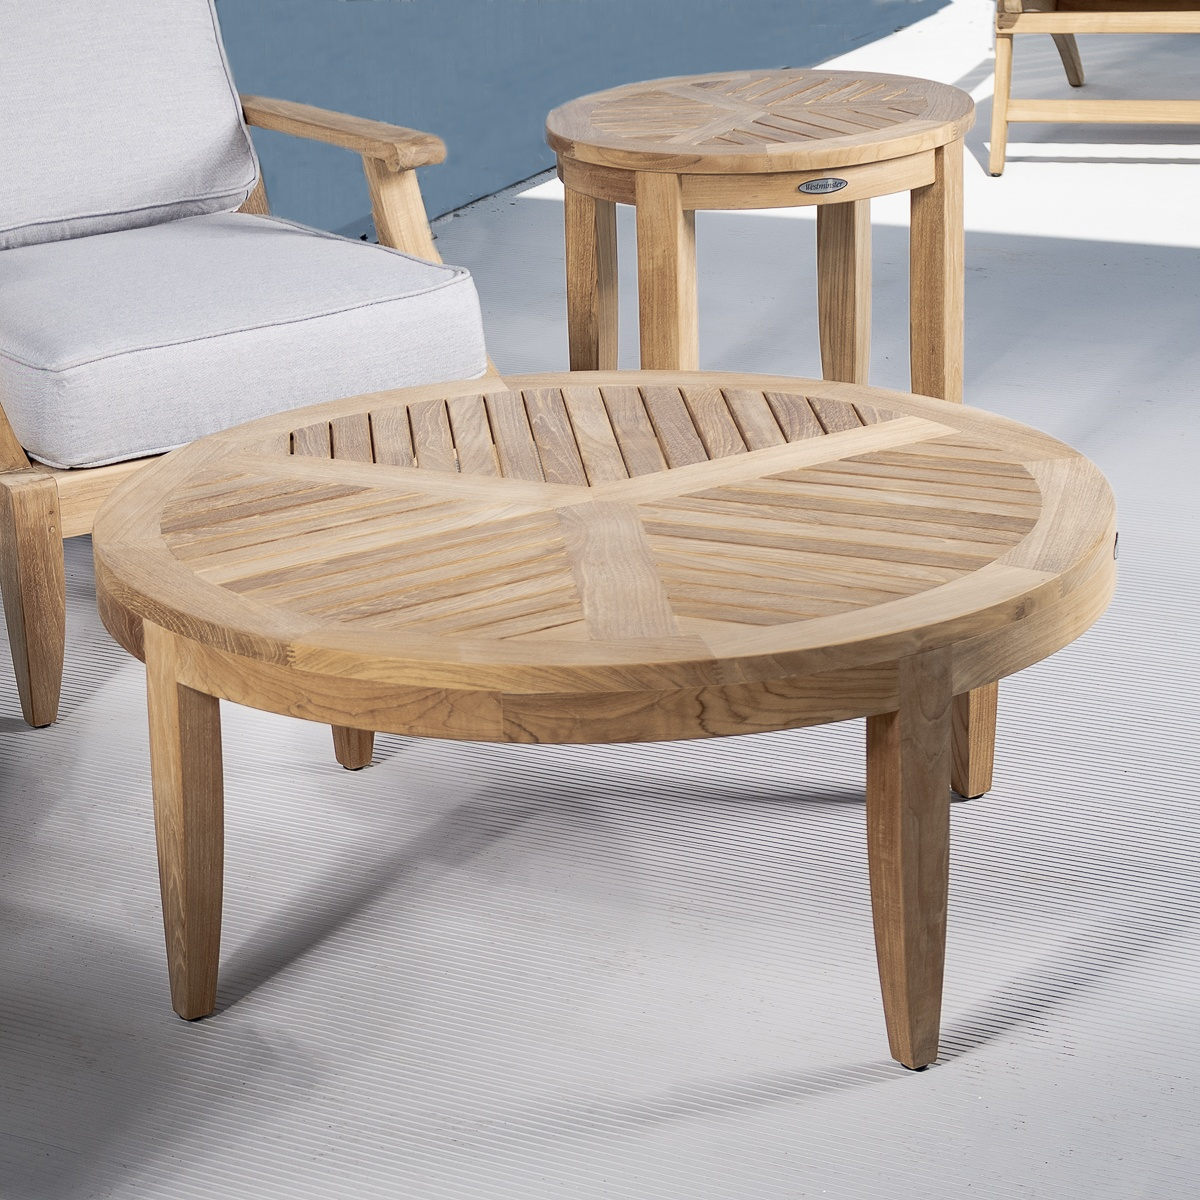 Laguna Teak Round Coffee and Sofa Table  Westminster Teak